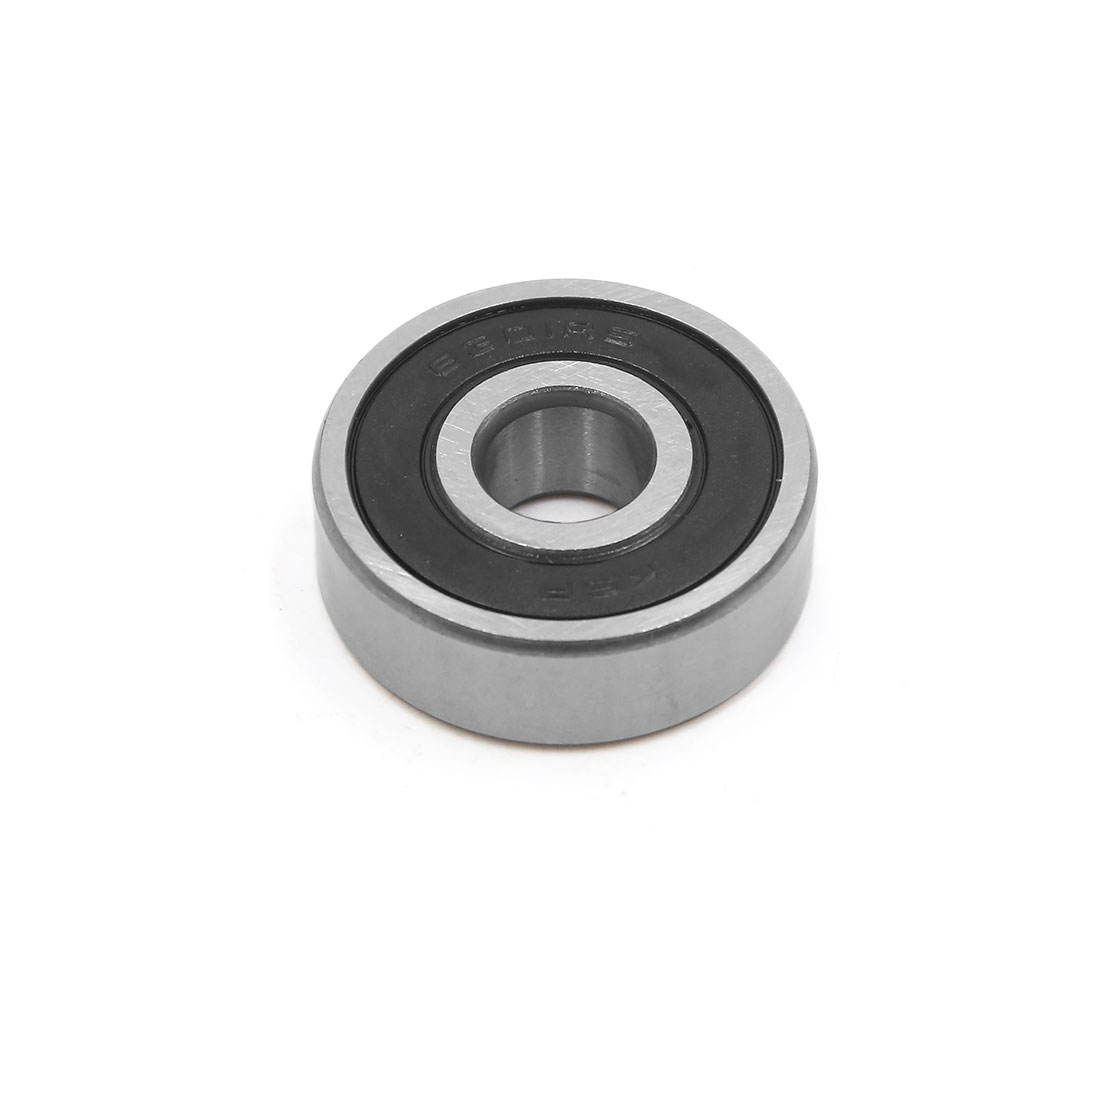 2pcs 6301-2RS Scooter Motorcycle Sealed Deep Groove Ball Bearing 37 x 12 x 12mm - image 1 of 2